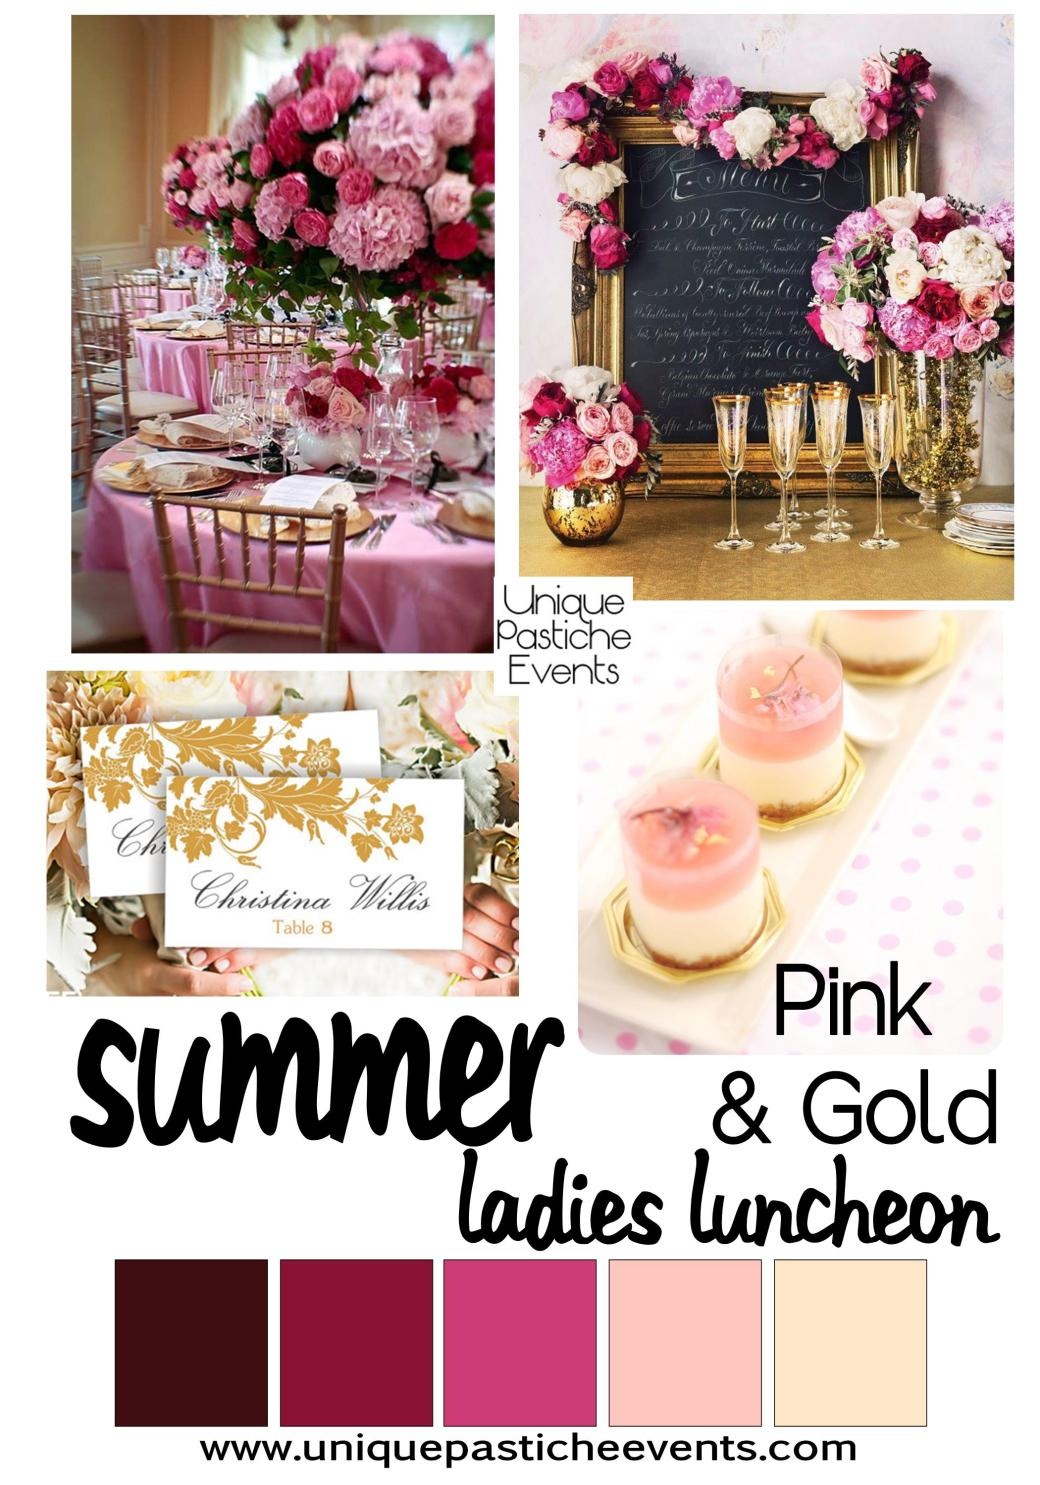 Hot Pink + Gold Ladies Luncheon See the full post here: https://uniquepasticheevents.com/2014/07/23/hot-pink-gold-ladies-luncheon/